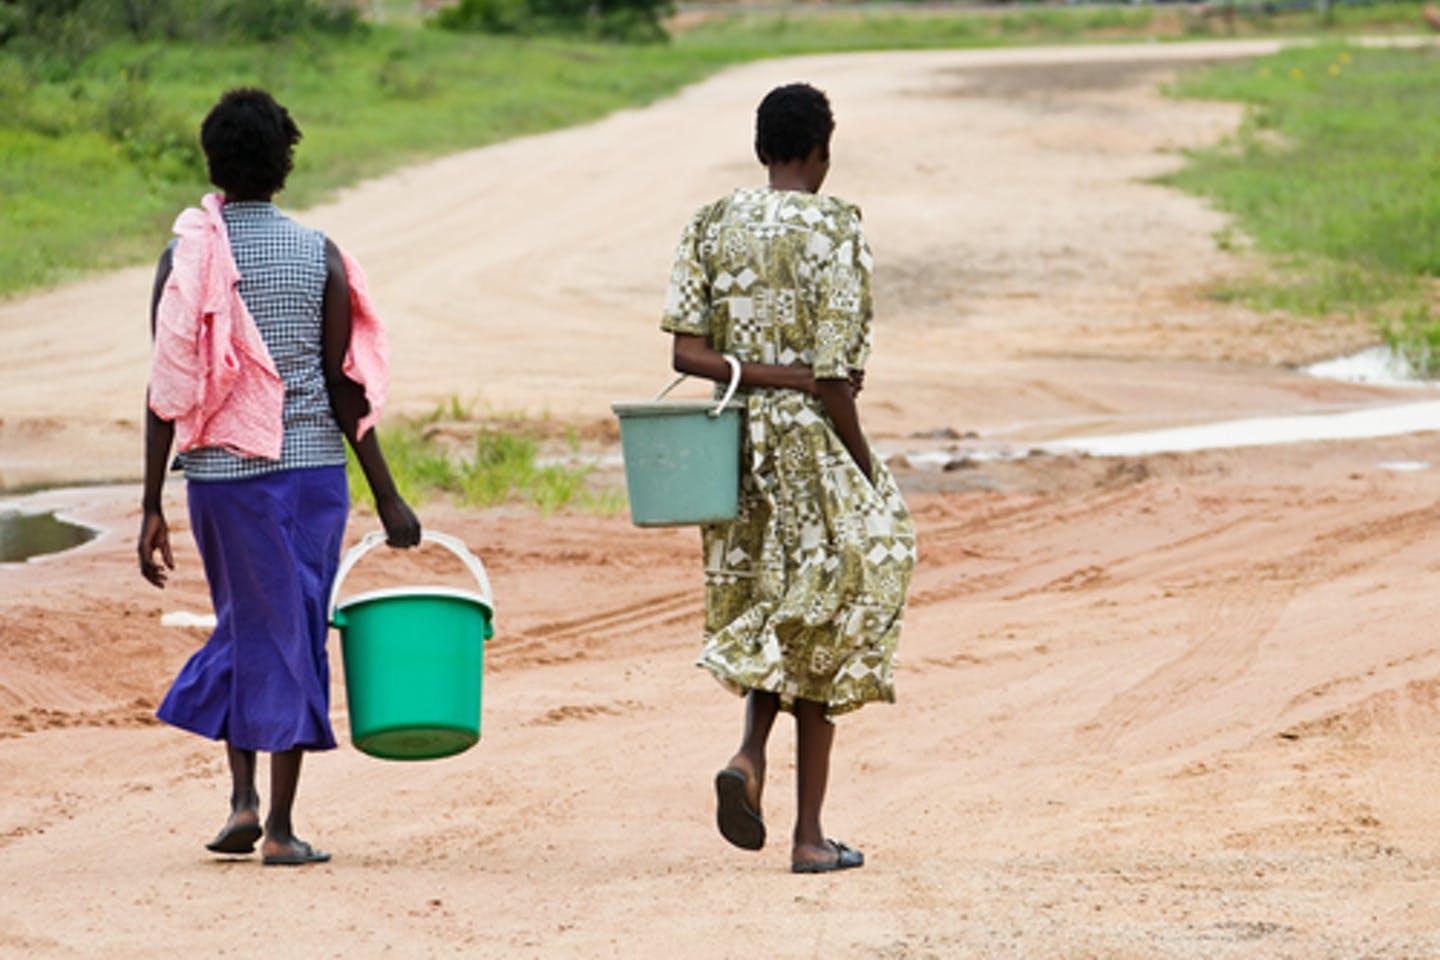 Africa water scarcity